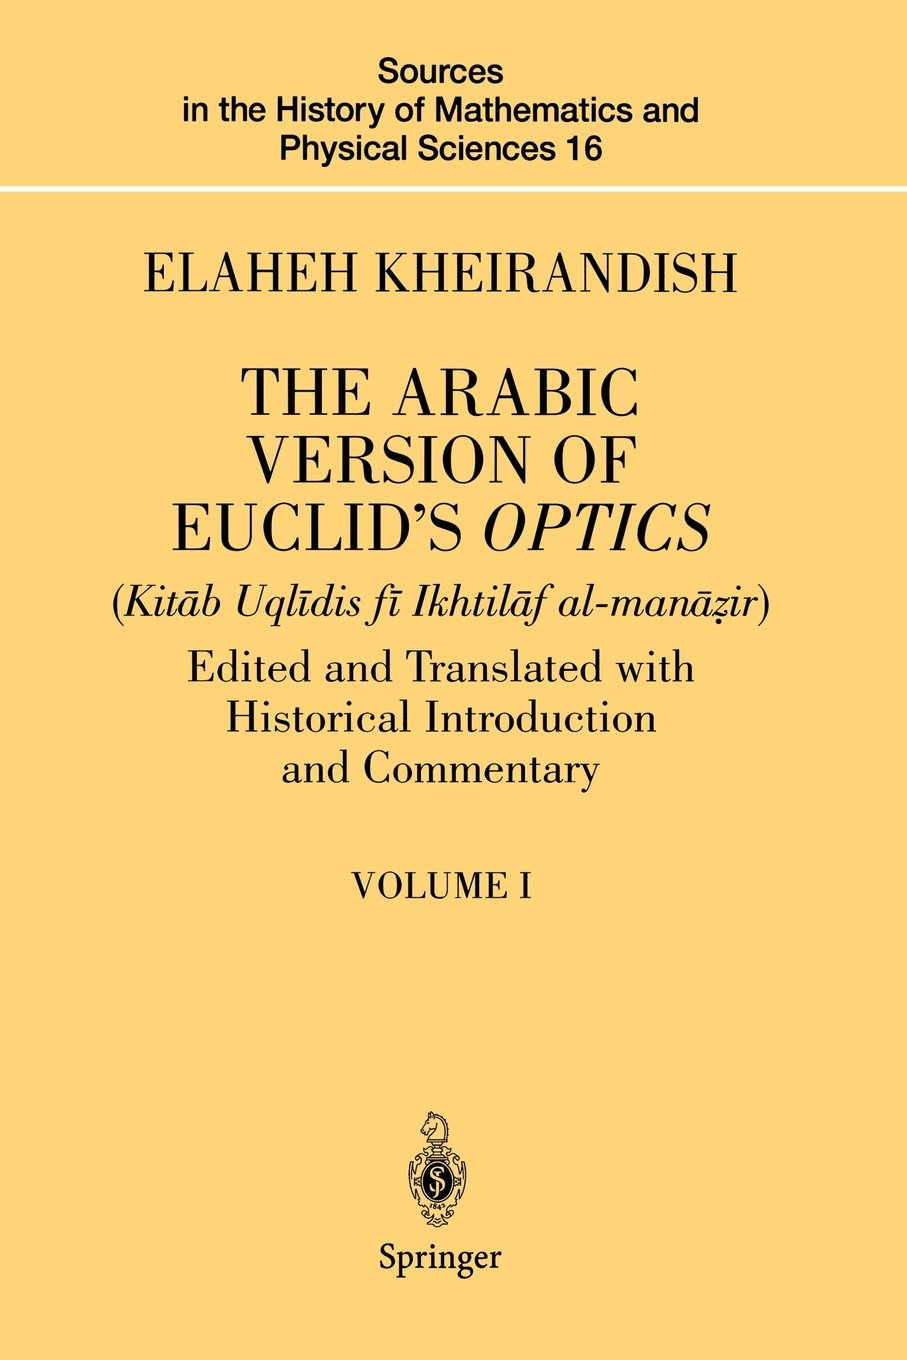 The Arabic Version of Euclid's Optics: Edited and Translated with Historical Introduction and Commentary Volume I free download